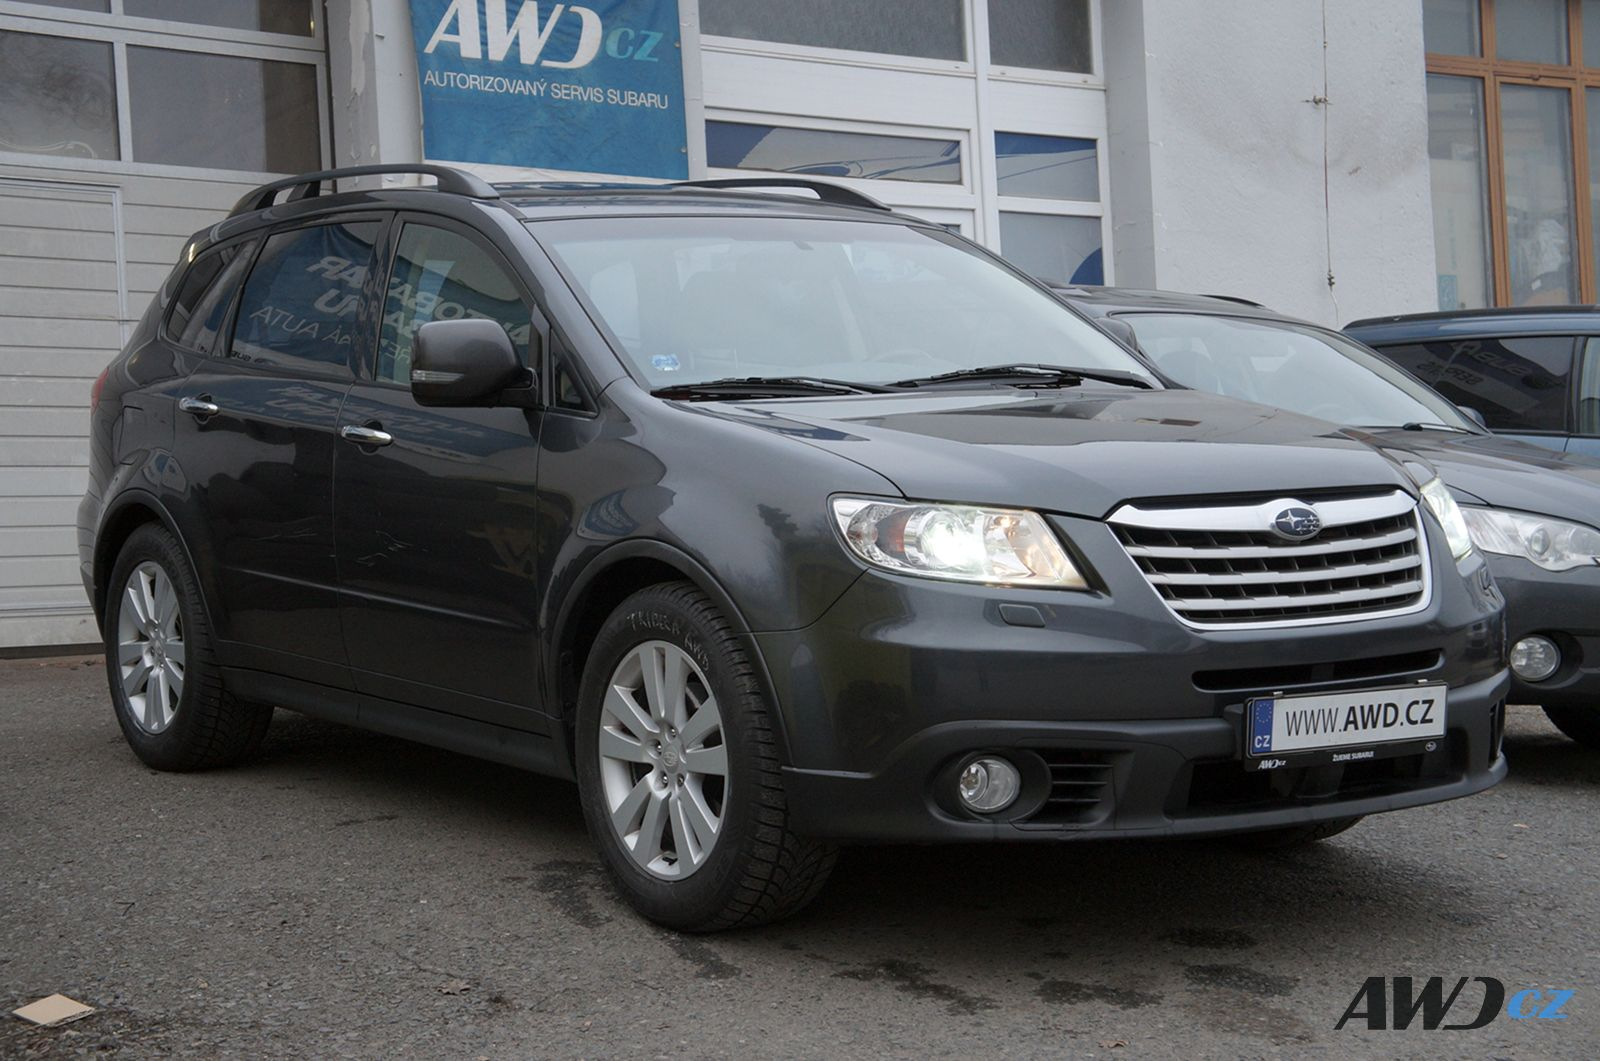 SUBARU Tribeca 3.6 Executive MY2009, 200000Kč, 231000 km, 2008